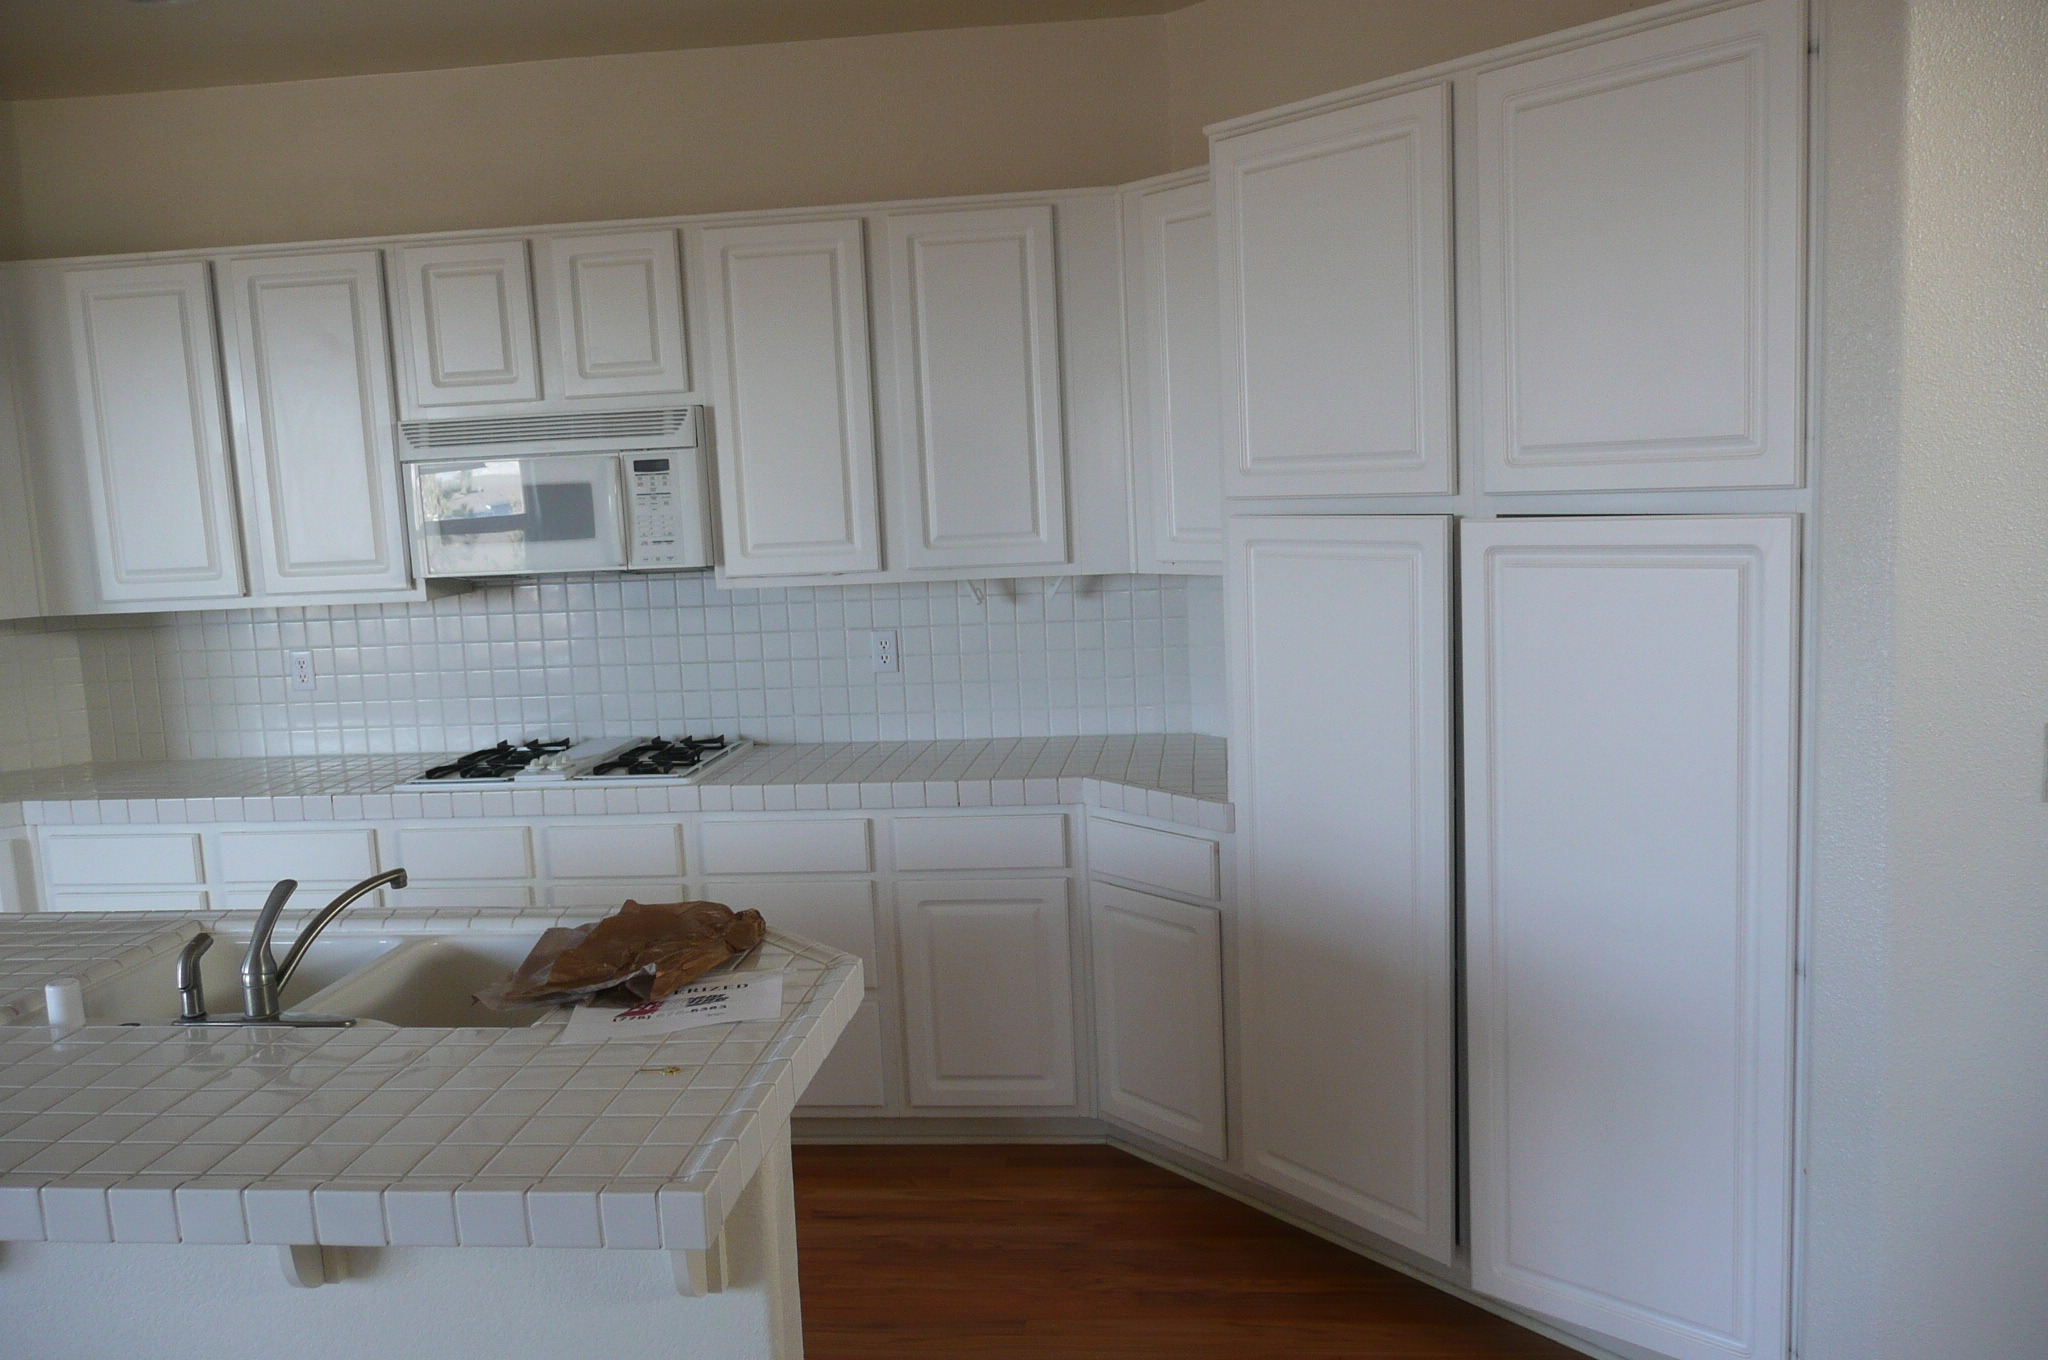 cabinets – Suncrest Builders